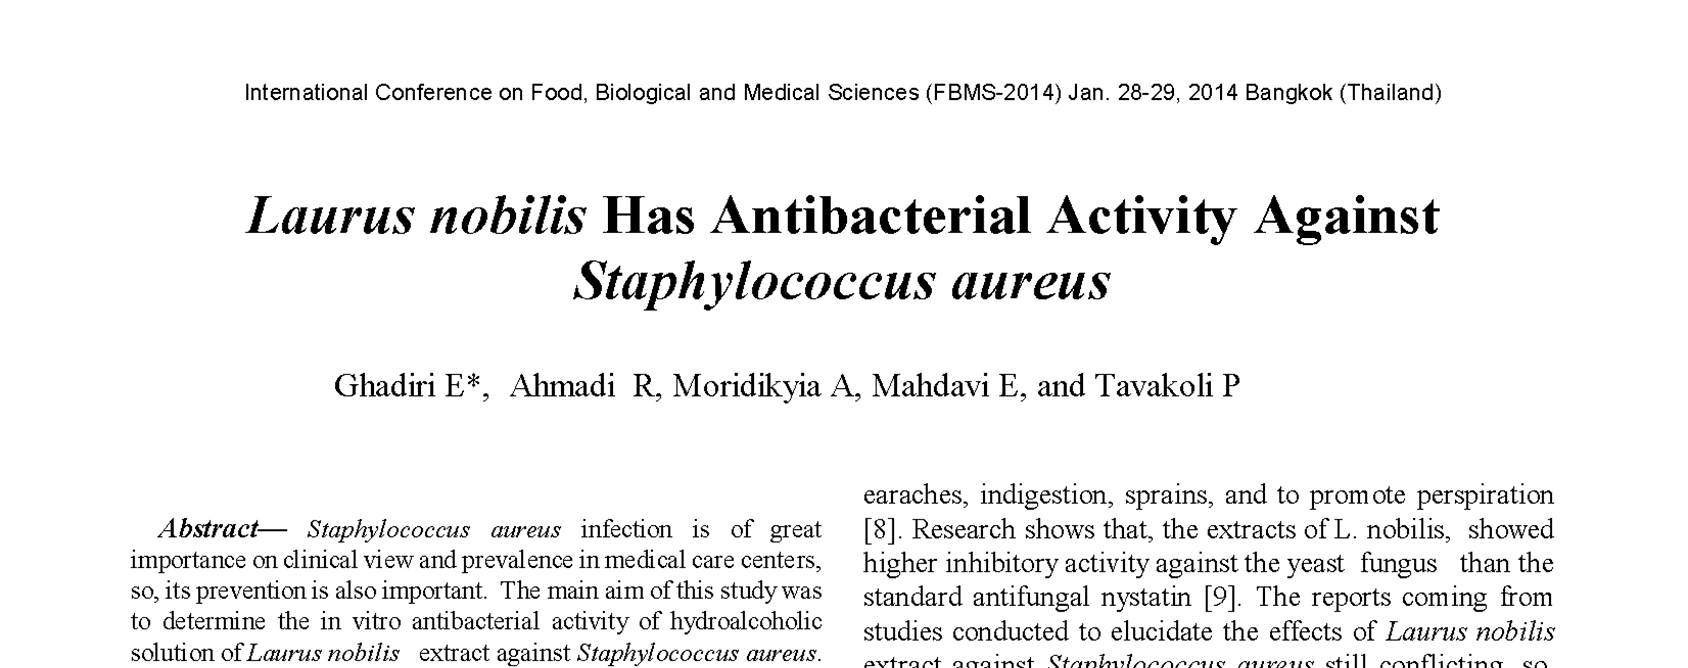 Laurus nobilis Has Antibacterial Activity Against Staphylococcus aureus thumbnail